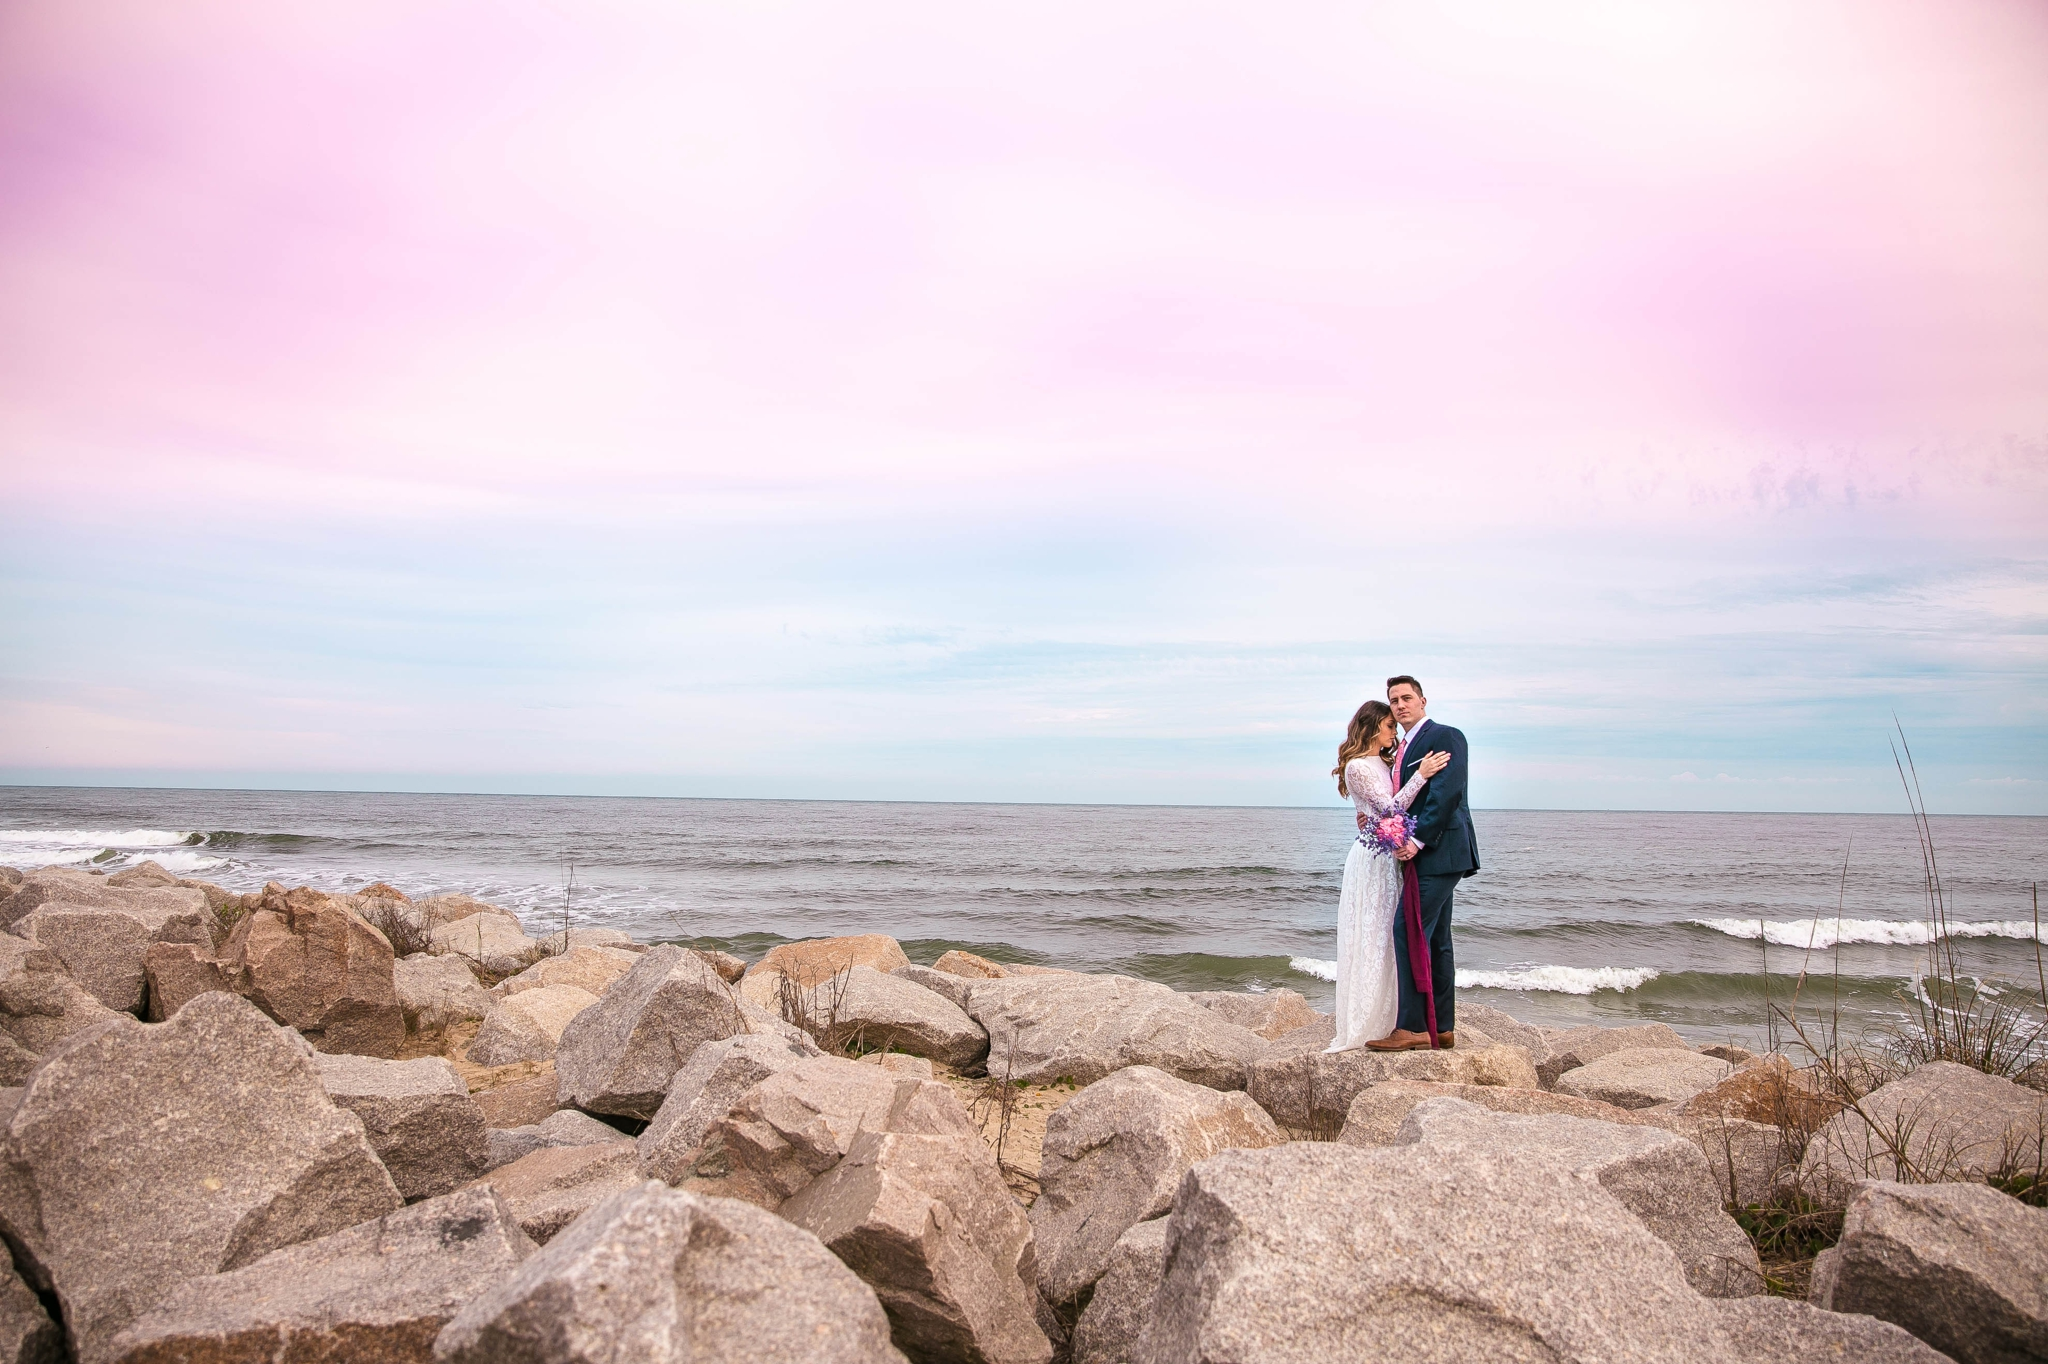 Cotton Candy Sky Beach Elopement Portraits - Bride and Groom on top of the Cliffs - - dress by asos with purple and pink flowers and navy suit - oahu hawaii wedding photographer